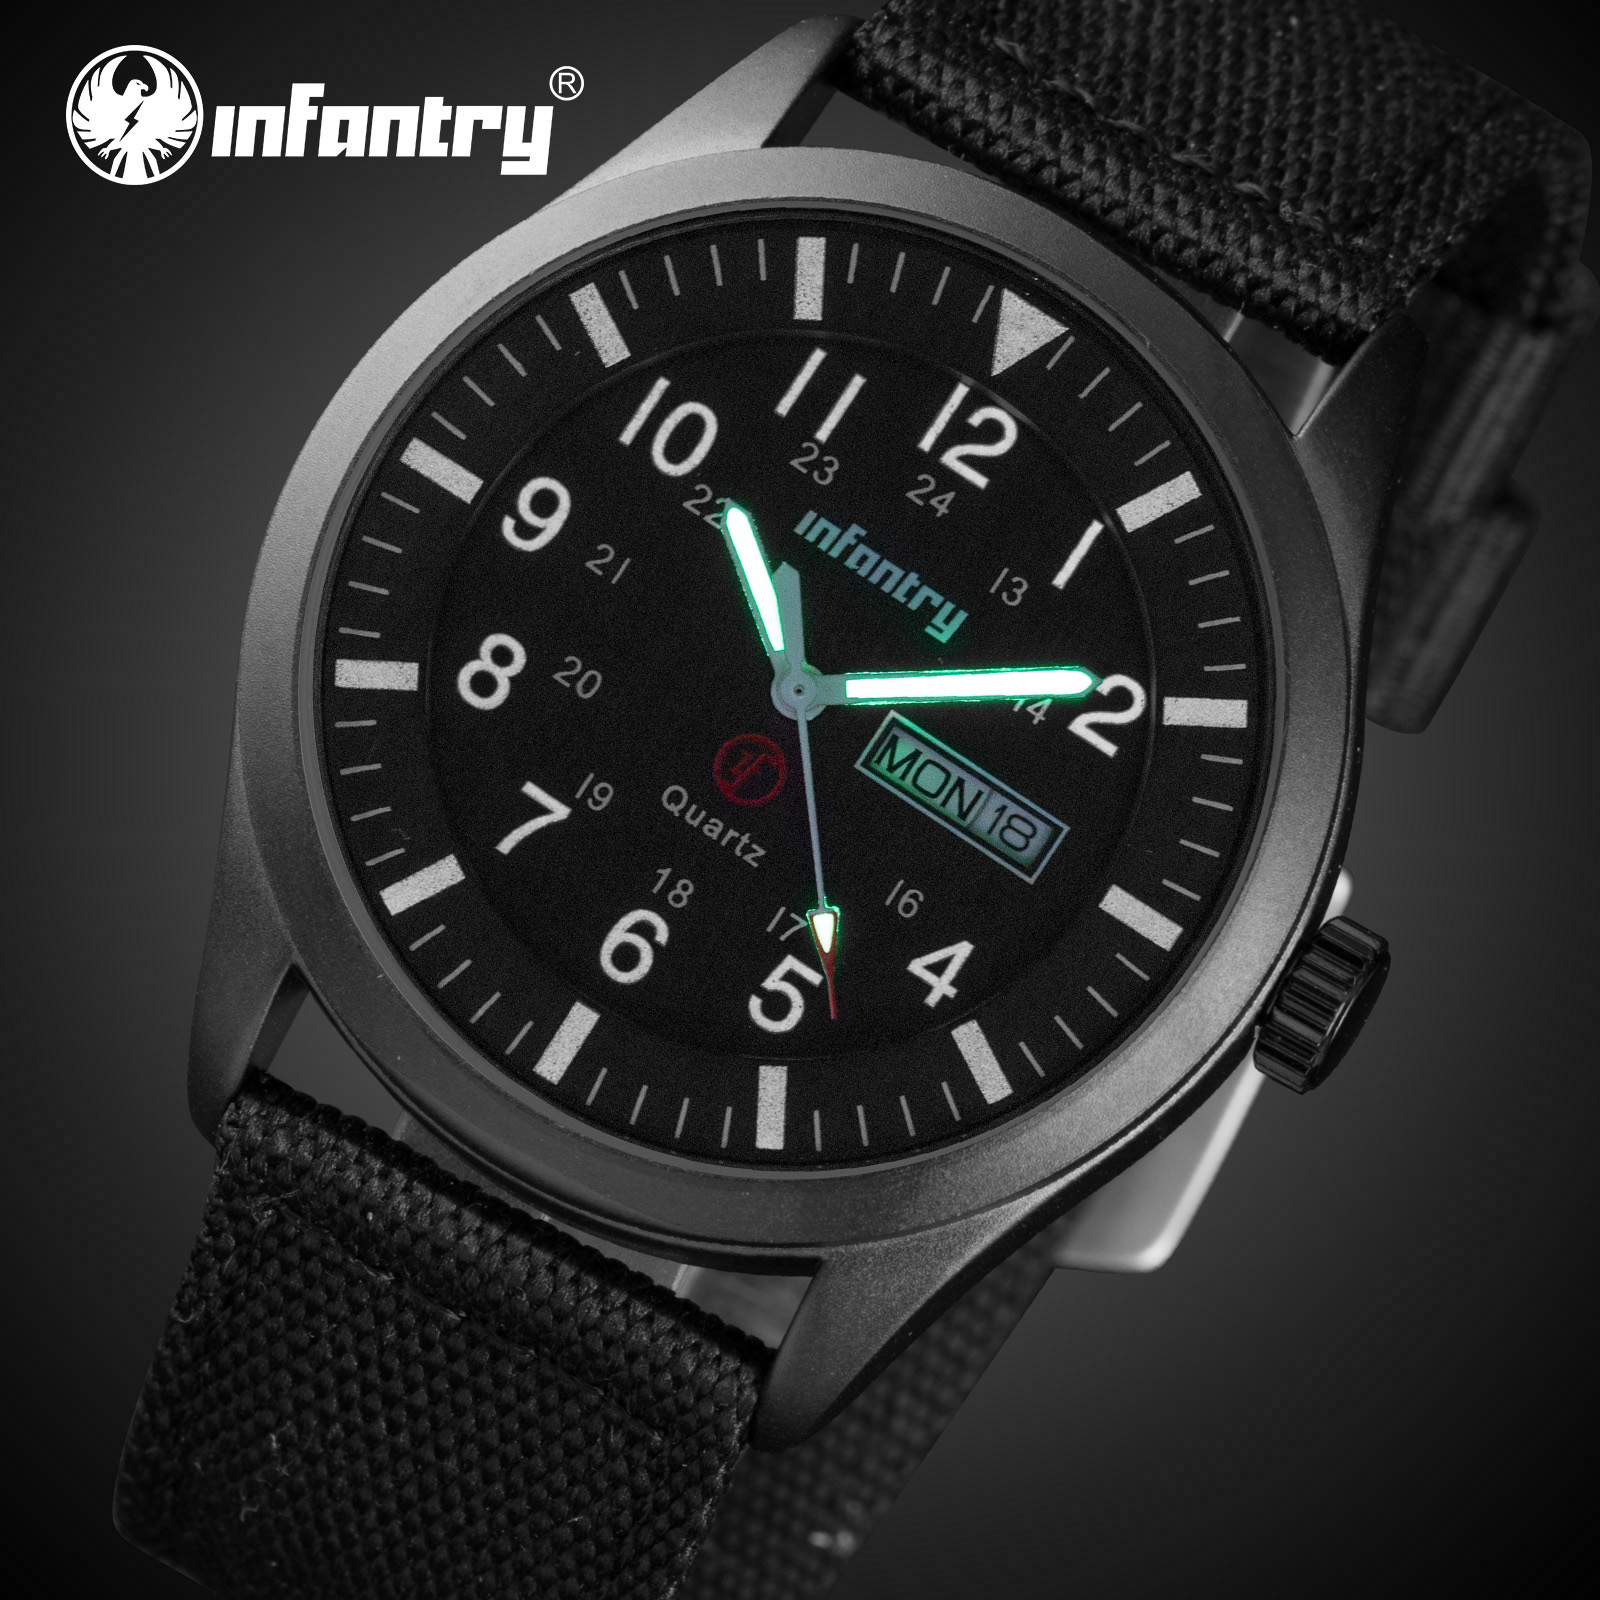 INFANTRY Mens Watches Top Brand Luxury Military Watch Men Tactical Waterproof Date Day Black Watch For Men Relogio Masculino